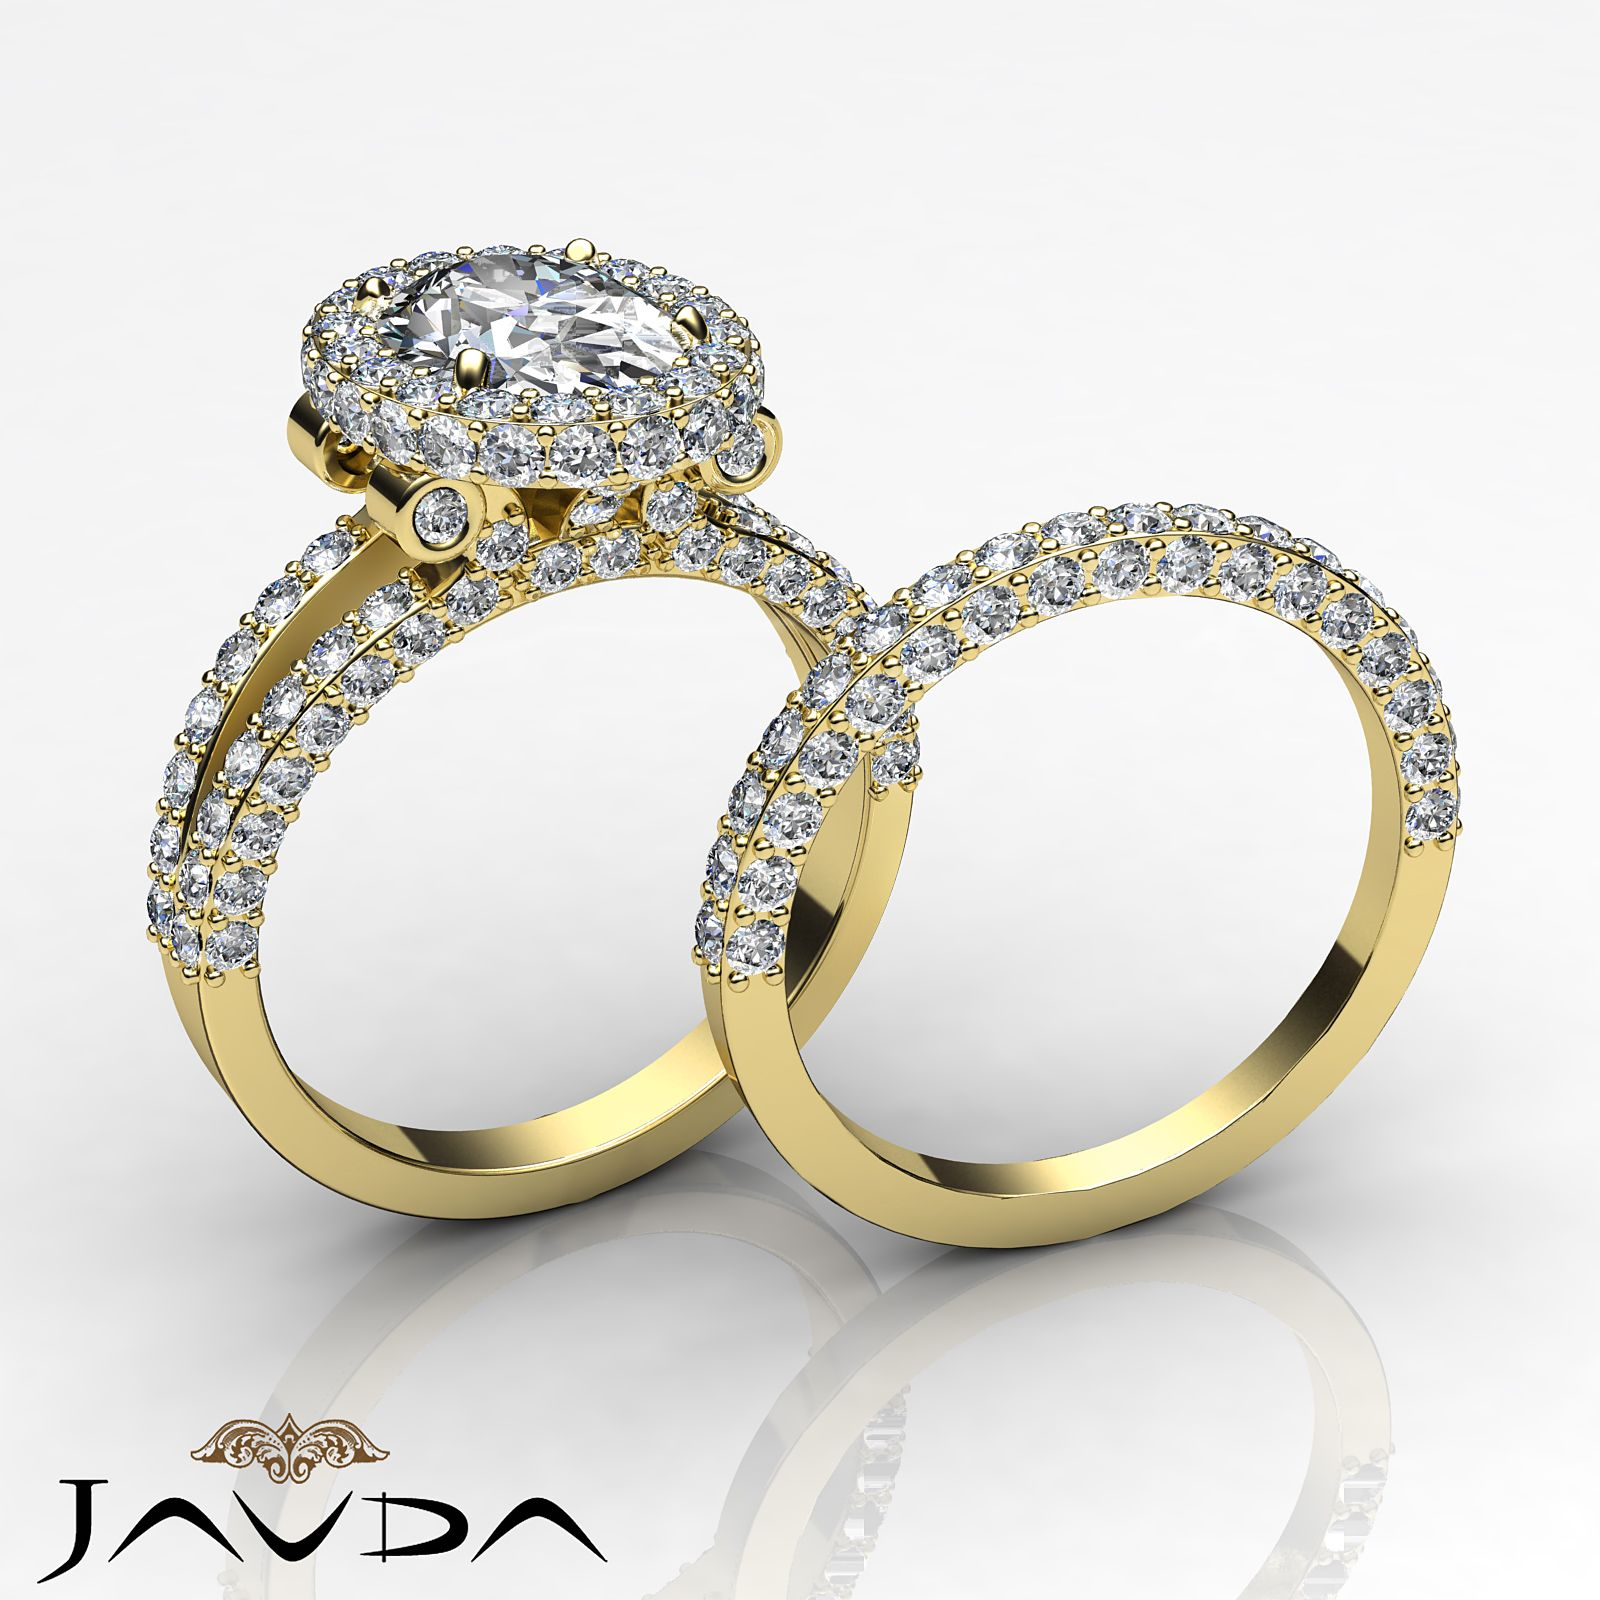 Oval diamond halo pave engagement ring gia h si bridal set k